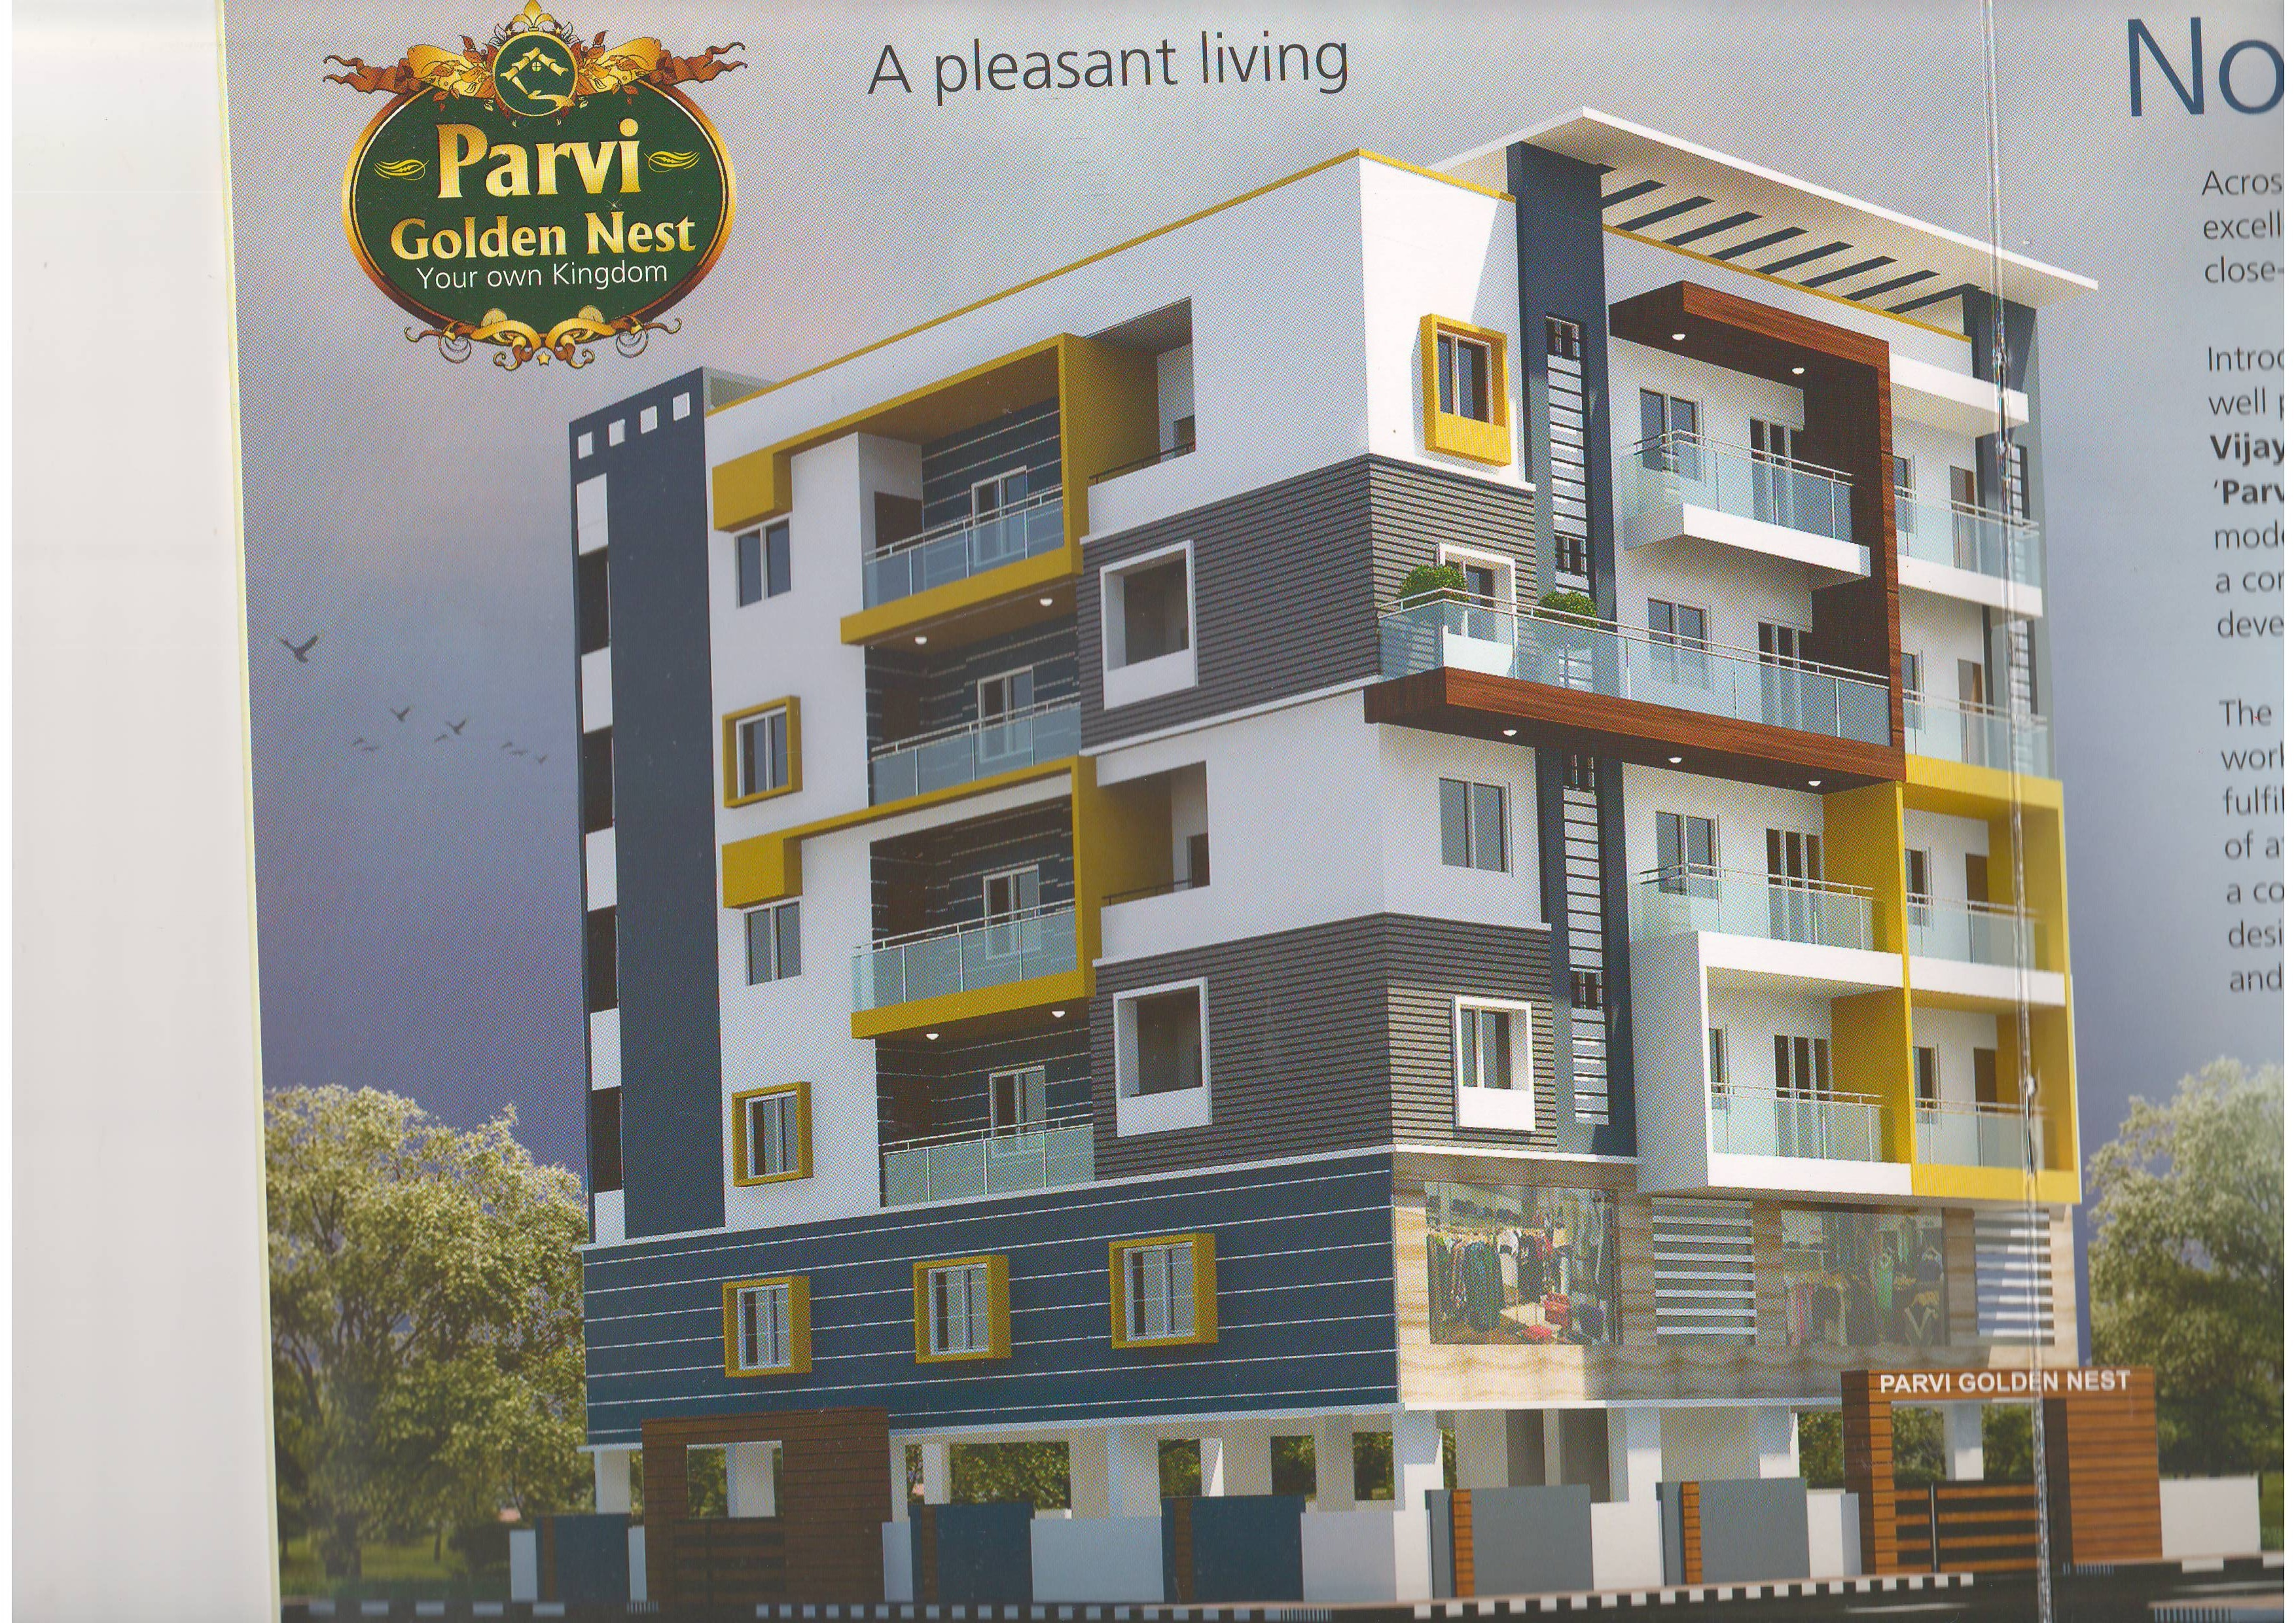 1)3BHK North and East  Flats at VIJAYANAGARA near MARUTHI MANDIRA.  Land Area 5, 000 Sfts.  Stilt Car Parking  Ground Floor- Commercial Space.  First Floor—North 1500 sfts  Living area 13.5x16  Dining  8x8  Kitchen 12x8  Utility 4x8  Bedroom no 1 =11x10 with Toilet 6x5  Bedroom no 2=11x14 with Toilet 5x8 with Balcony 11x4  Bedroom  no 3=10x10 .  Common Toilet 7x5.  With basic Amenities Like Covered Car Parking-Cauvery and Borewell Water-Power Backup Genarater-Lift-24/5 Securitys- 7, 000 per sft including PARKING, BESCOM, BWSSB, only Registration cost Extra.